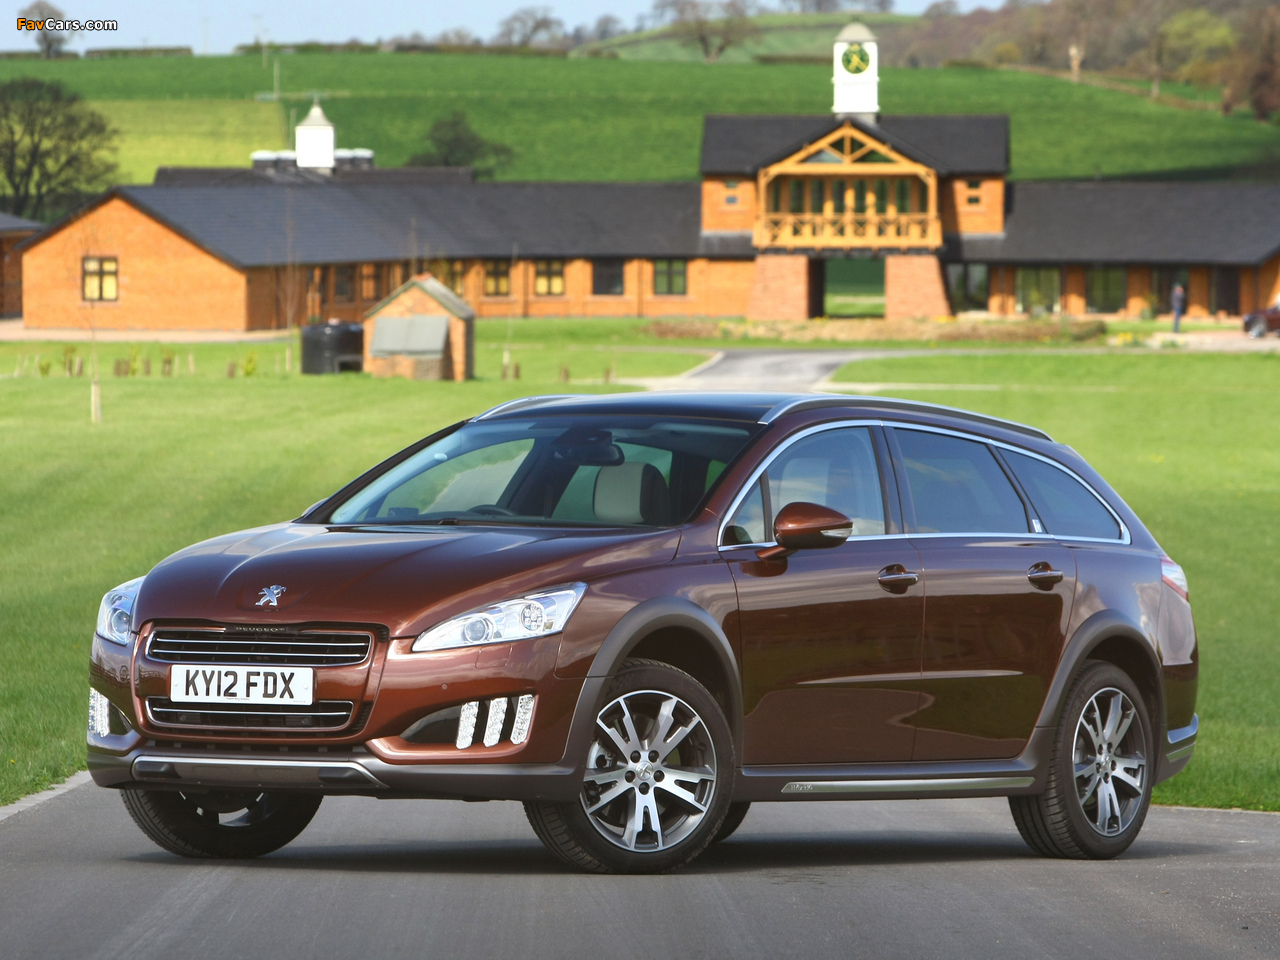 Peugeot 508 RXH UK-spec 2012 images (1280 x 960)